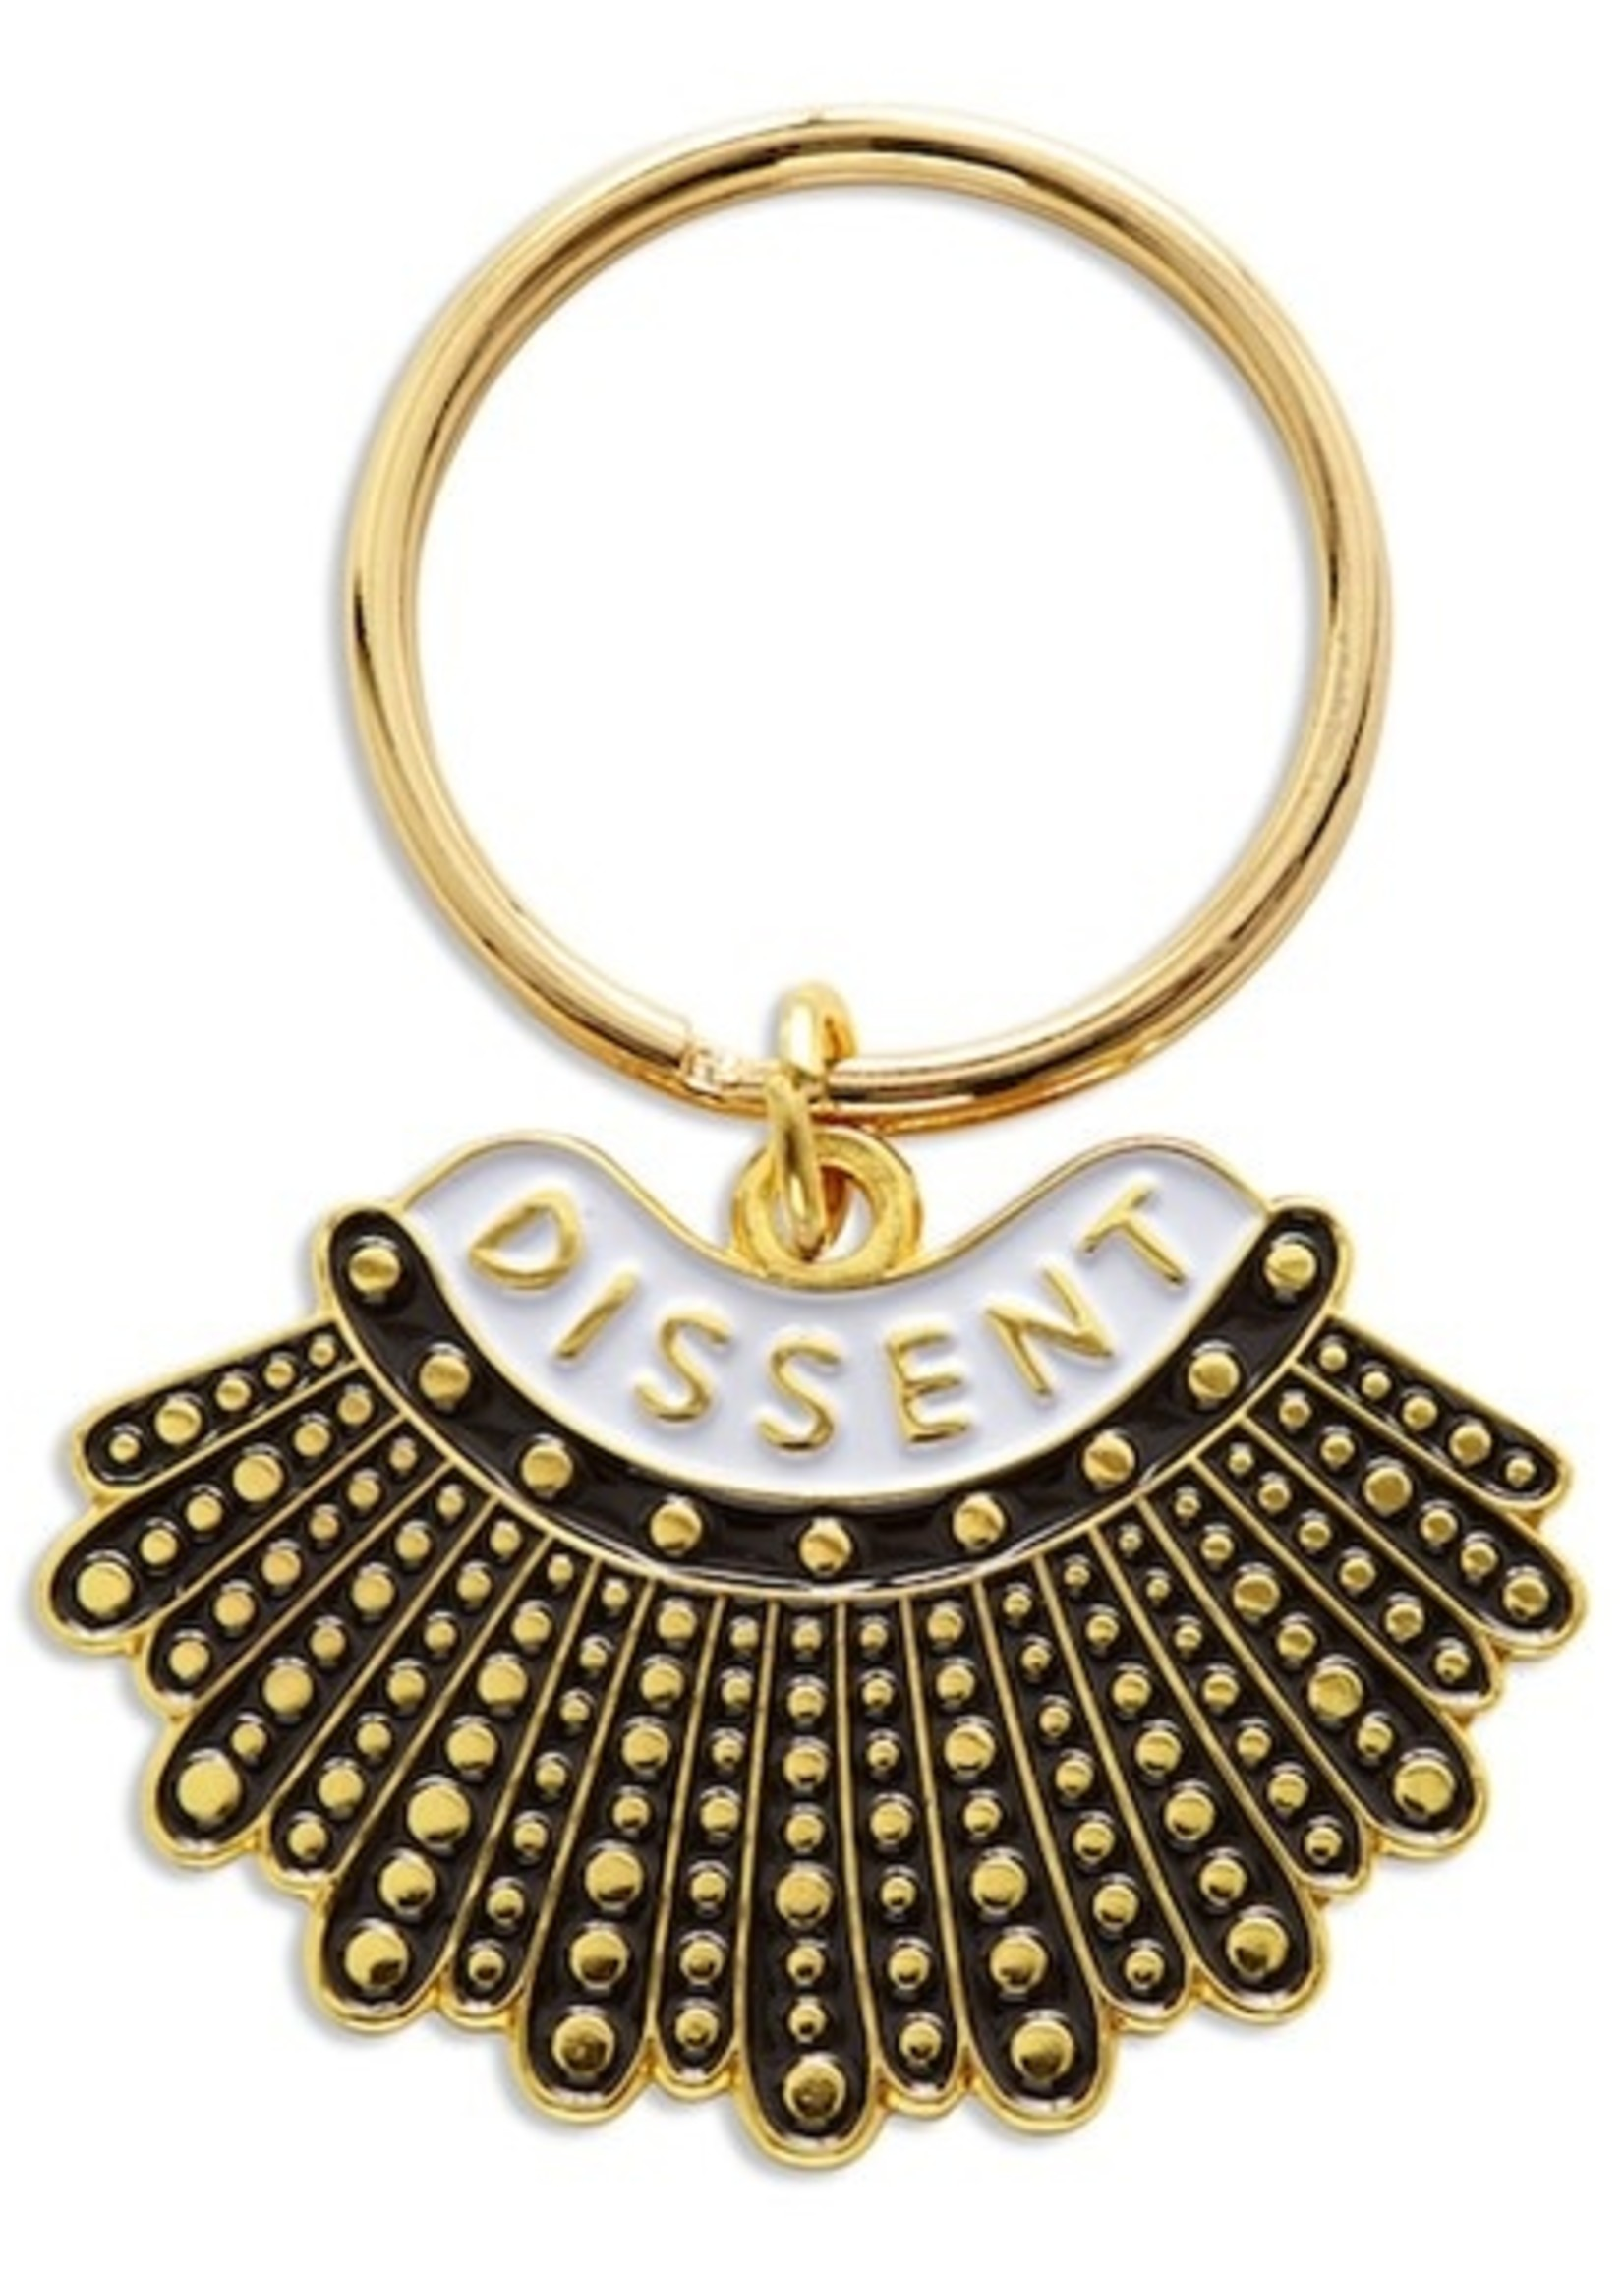 THE FOUND THE FOUND DISSENT COLLAR KEY CHAIN